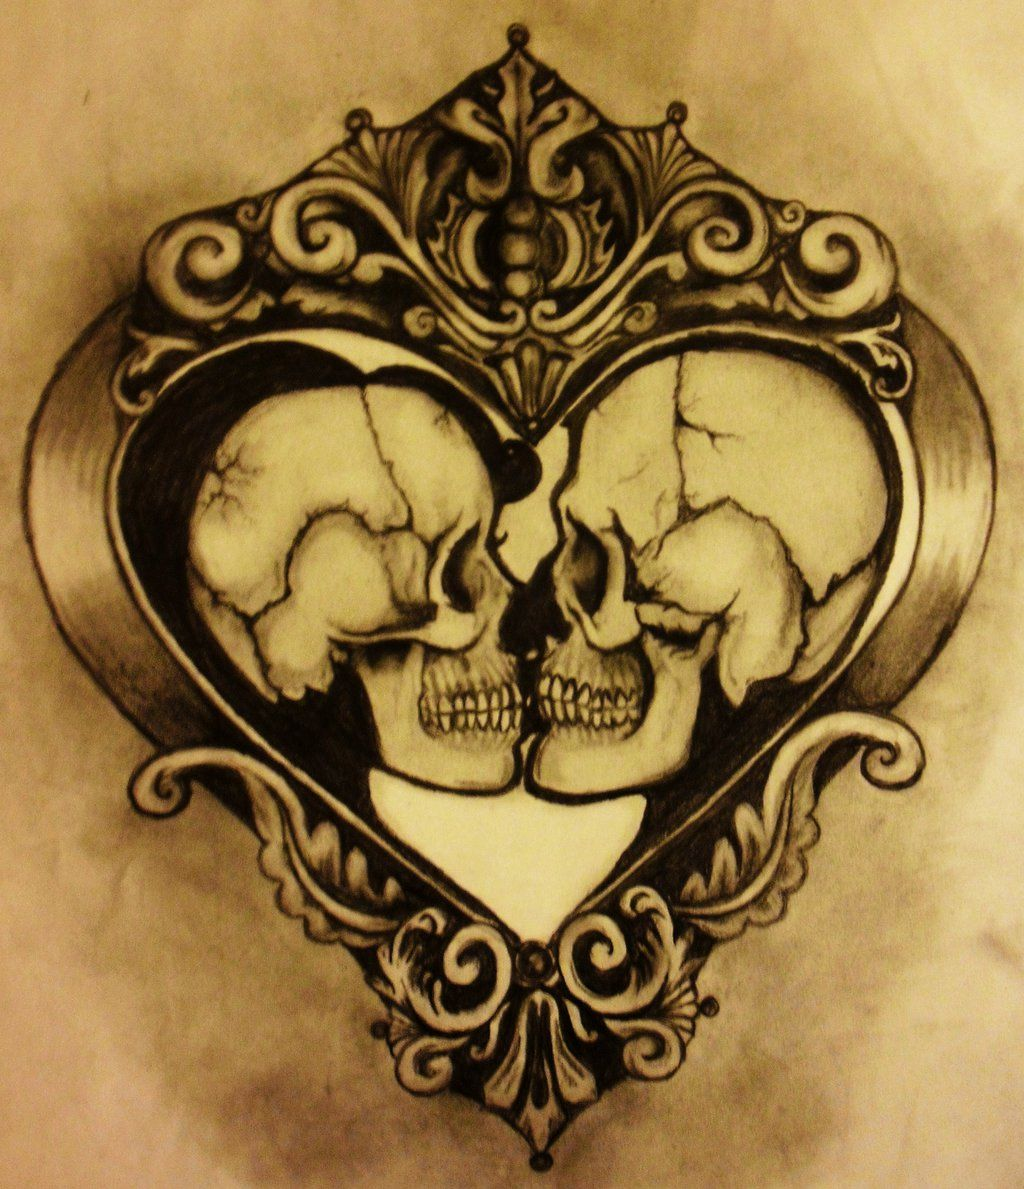 025 By Embentley Deviantart Com On Deviantart Heart Skulls